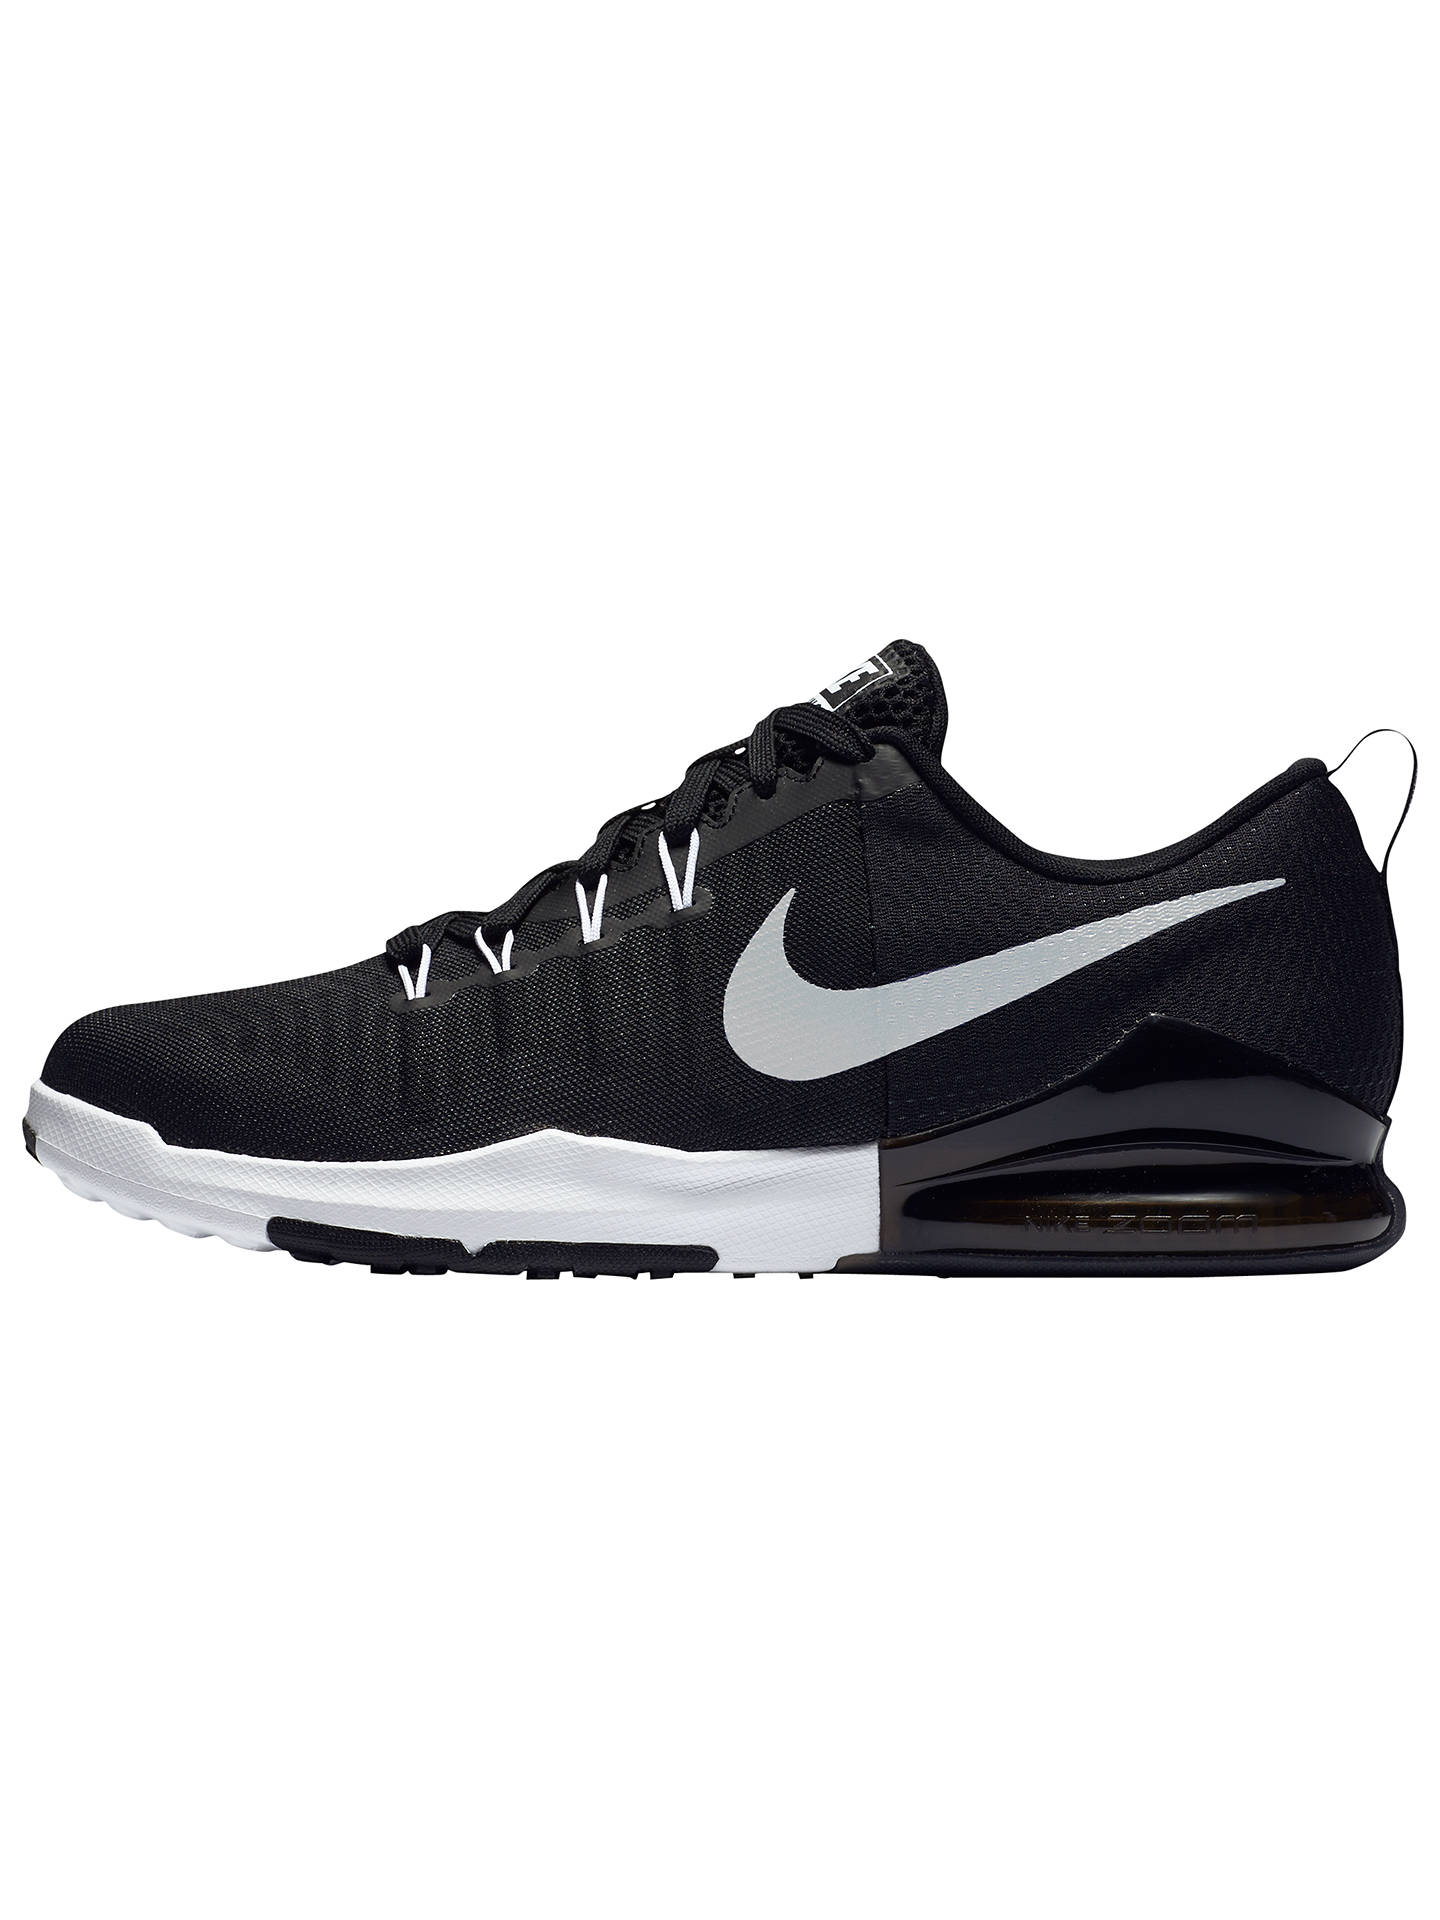 5d441be590c10 Nike Zoom Train Action Men s Cross Trainers at John Lewis   Partners